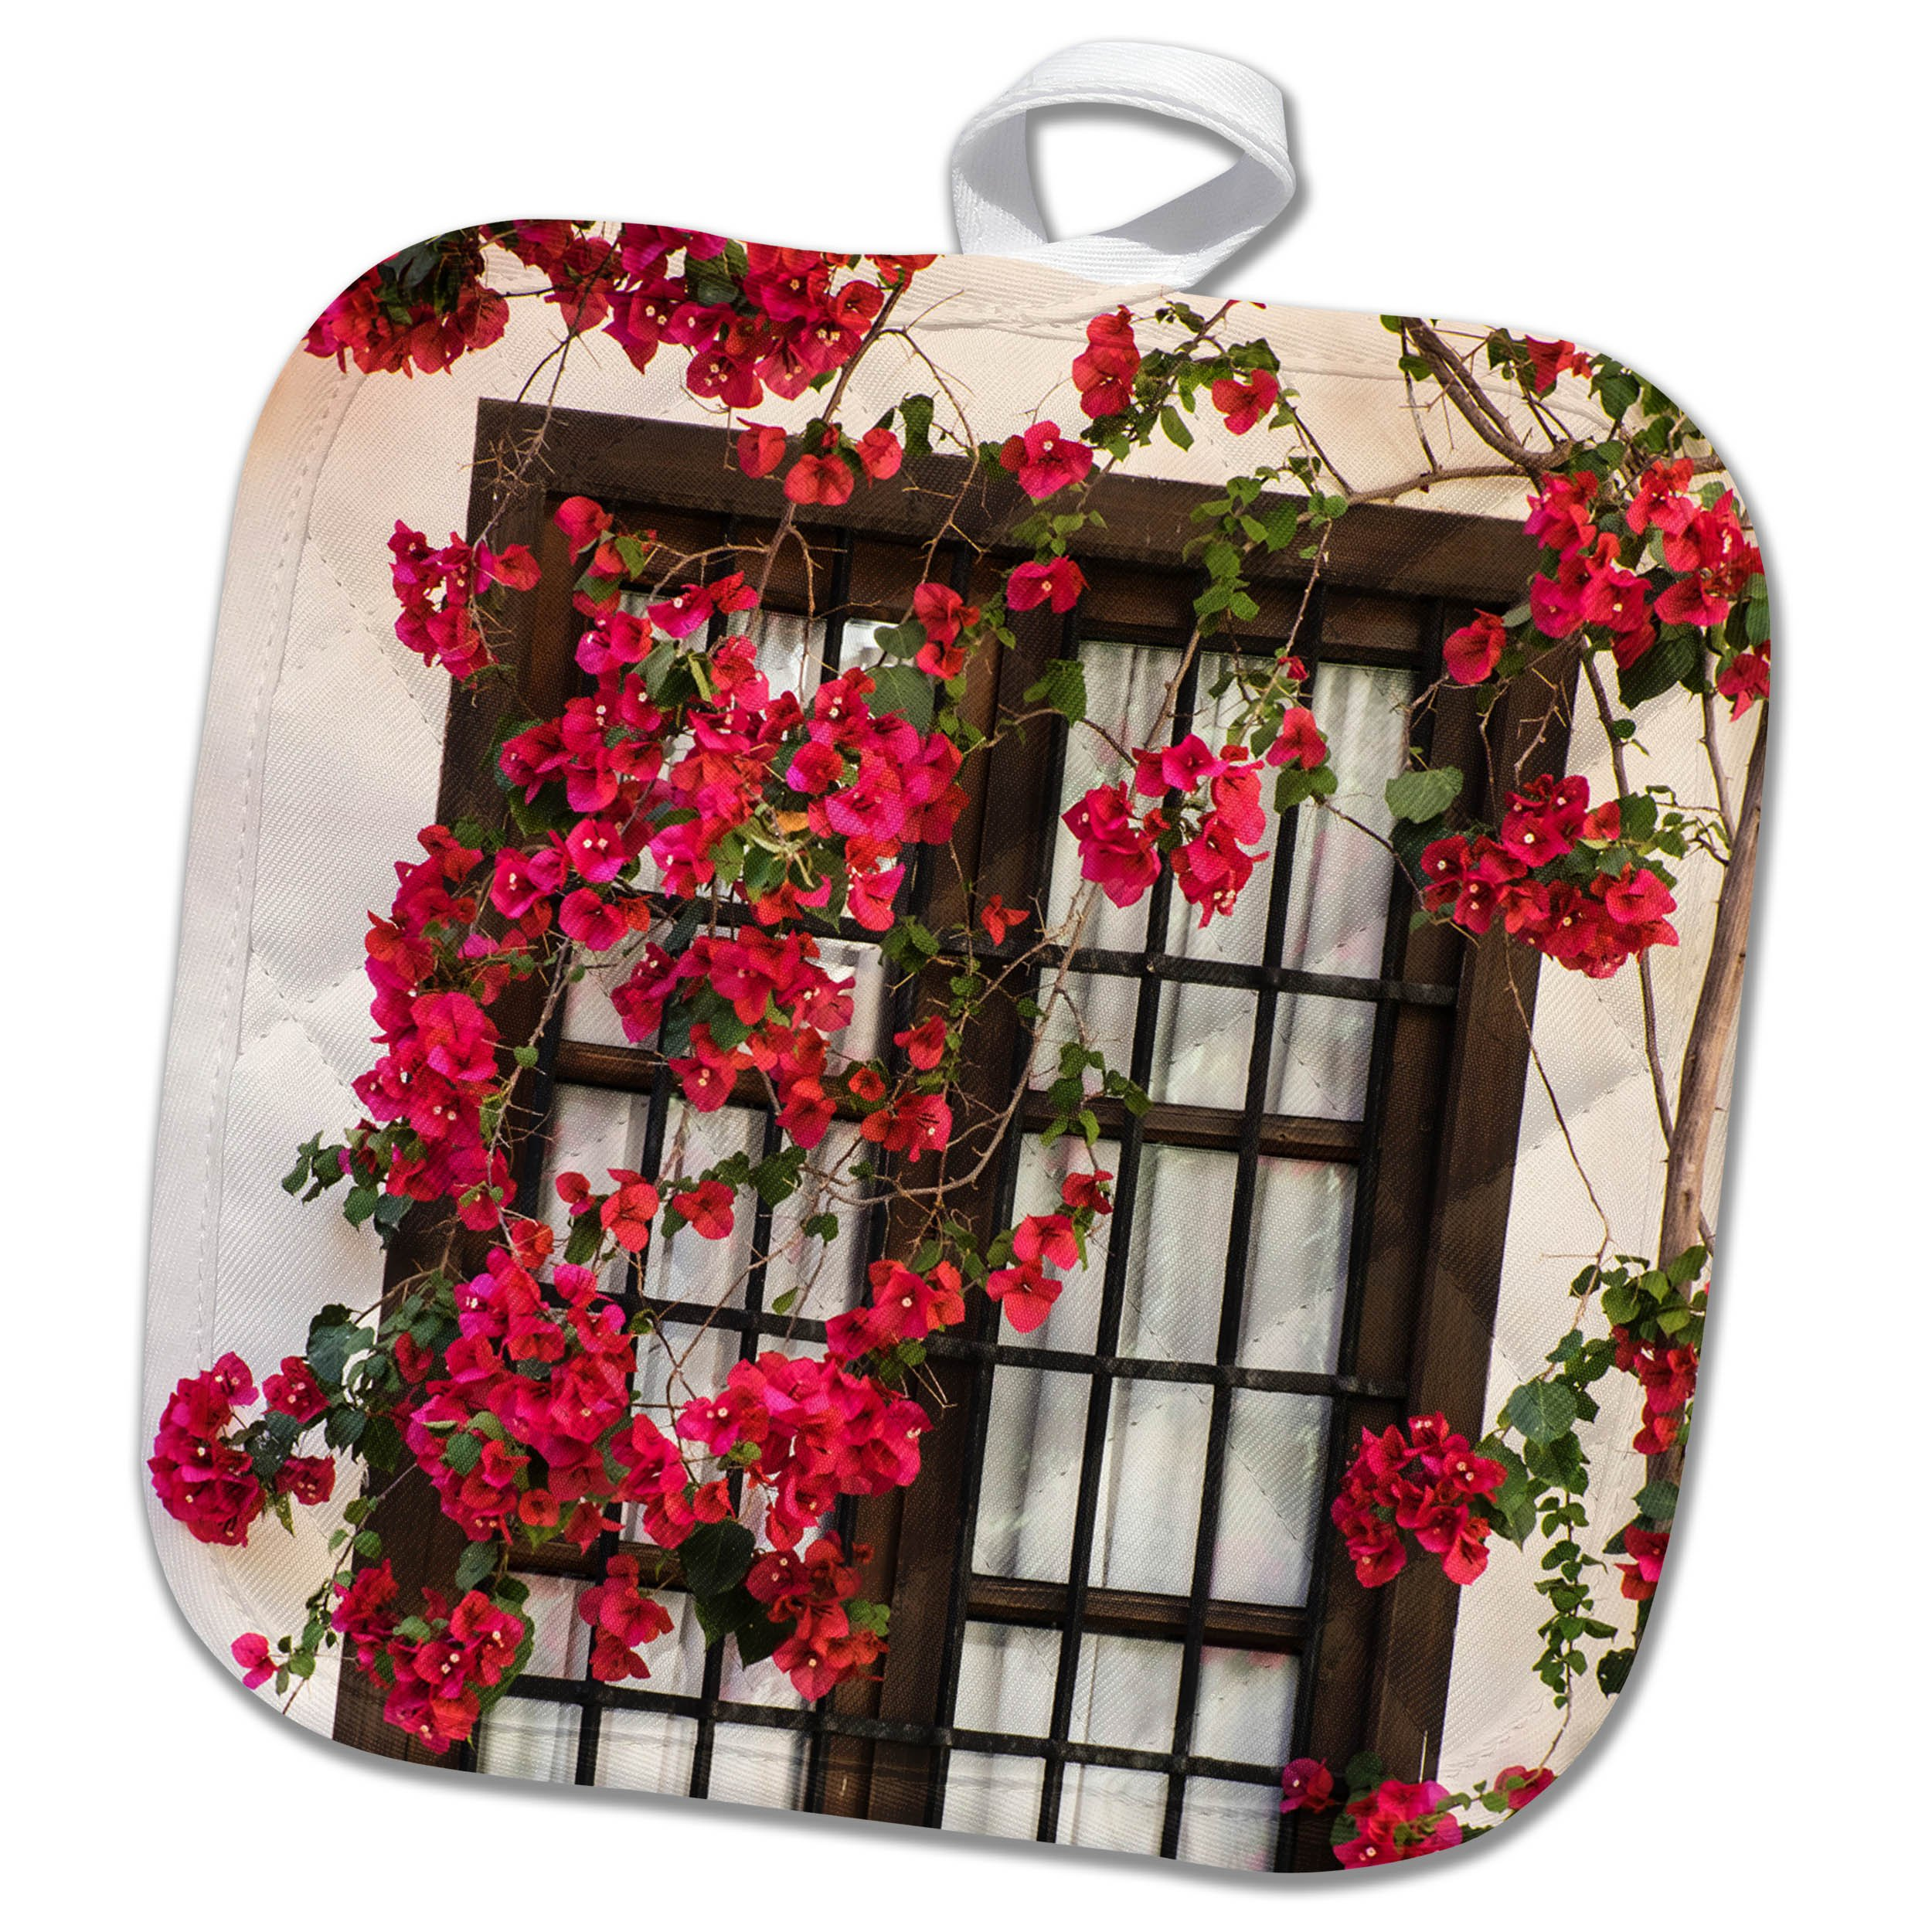 3dRose Danita Delimont - Flowers - Spain, Andalusia. Cordoba. Red bougainvillea and house window. - 8x8 Potholder (phl_277893_1)